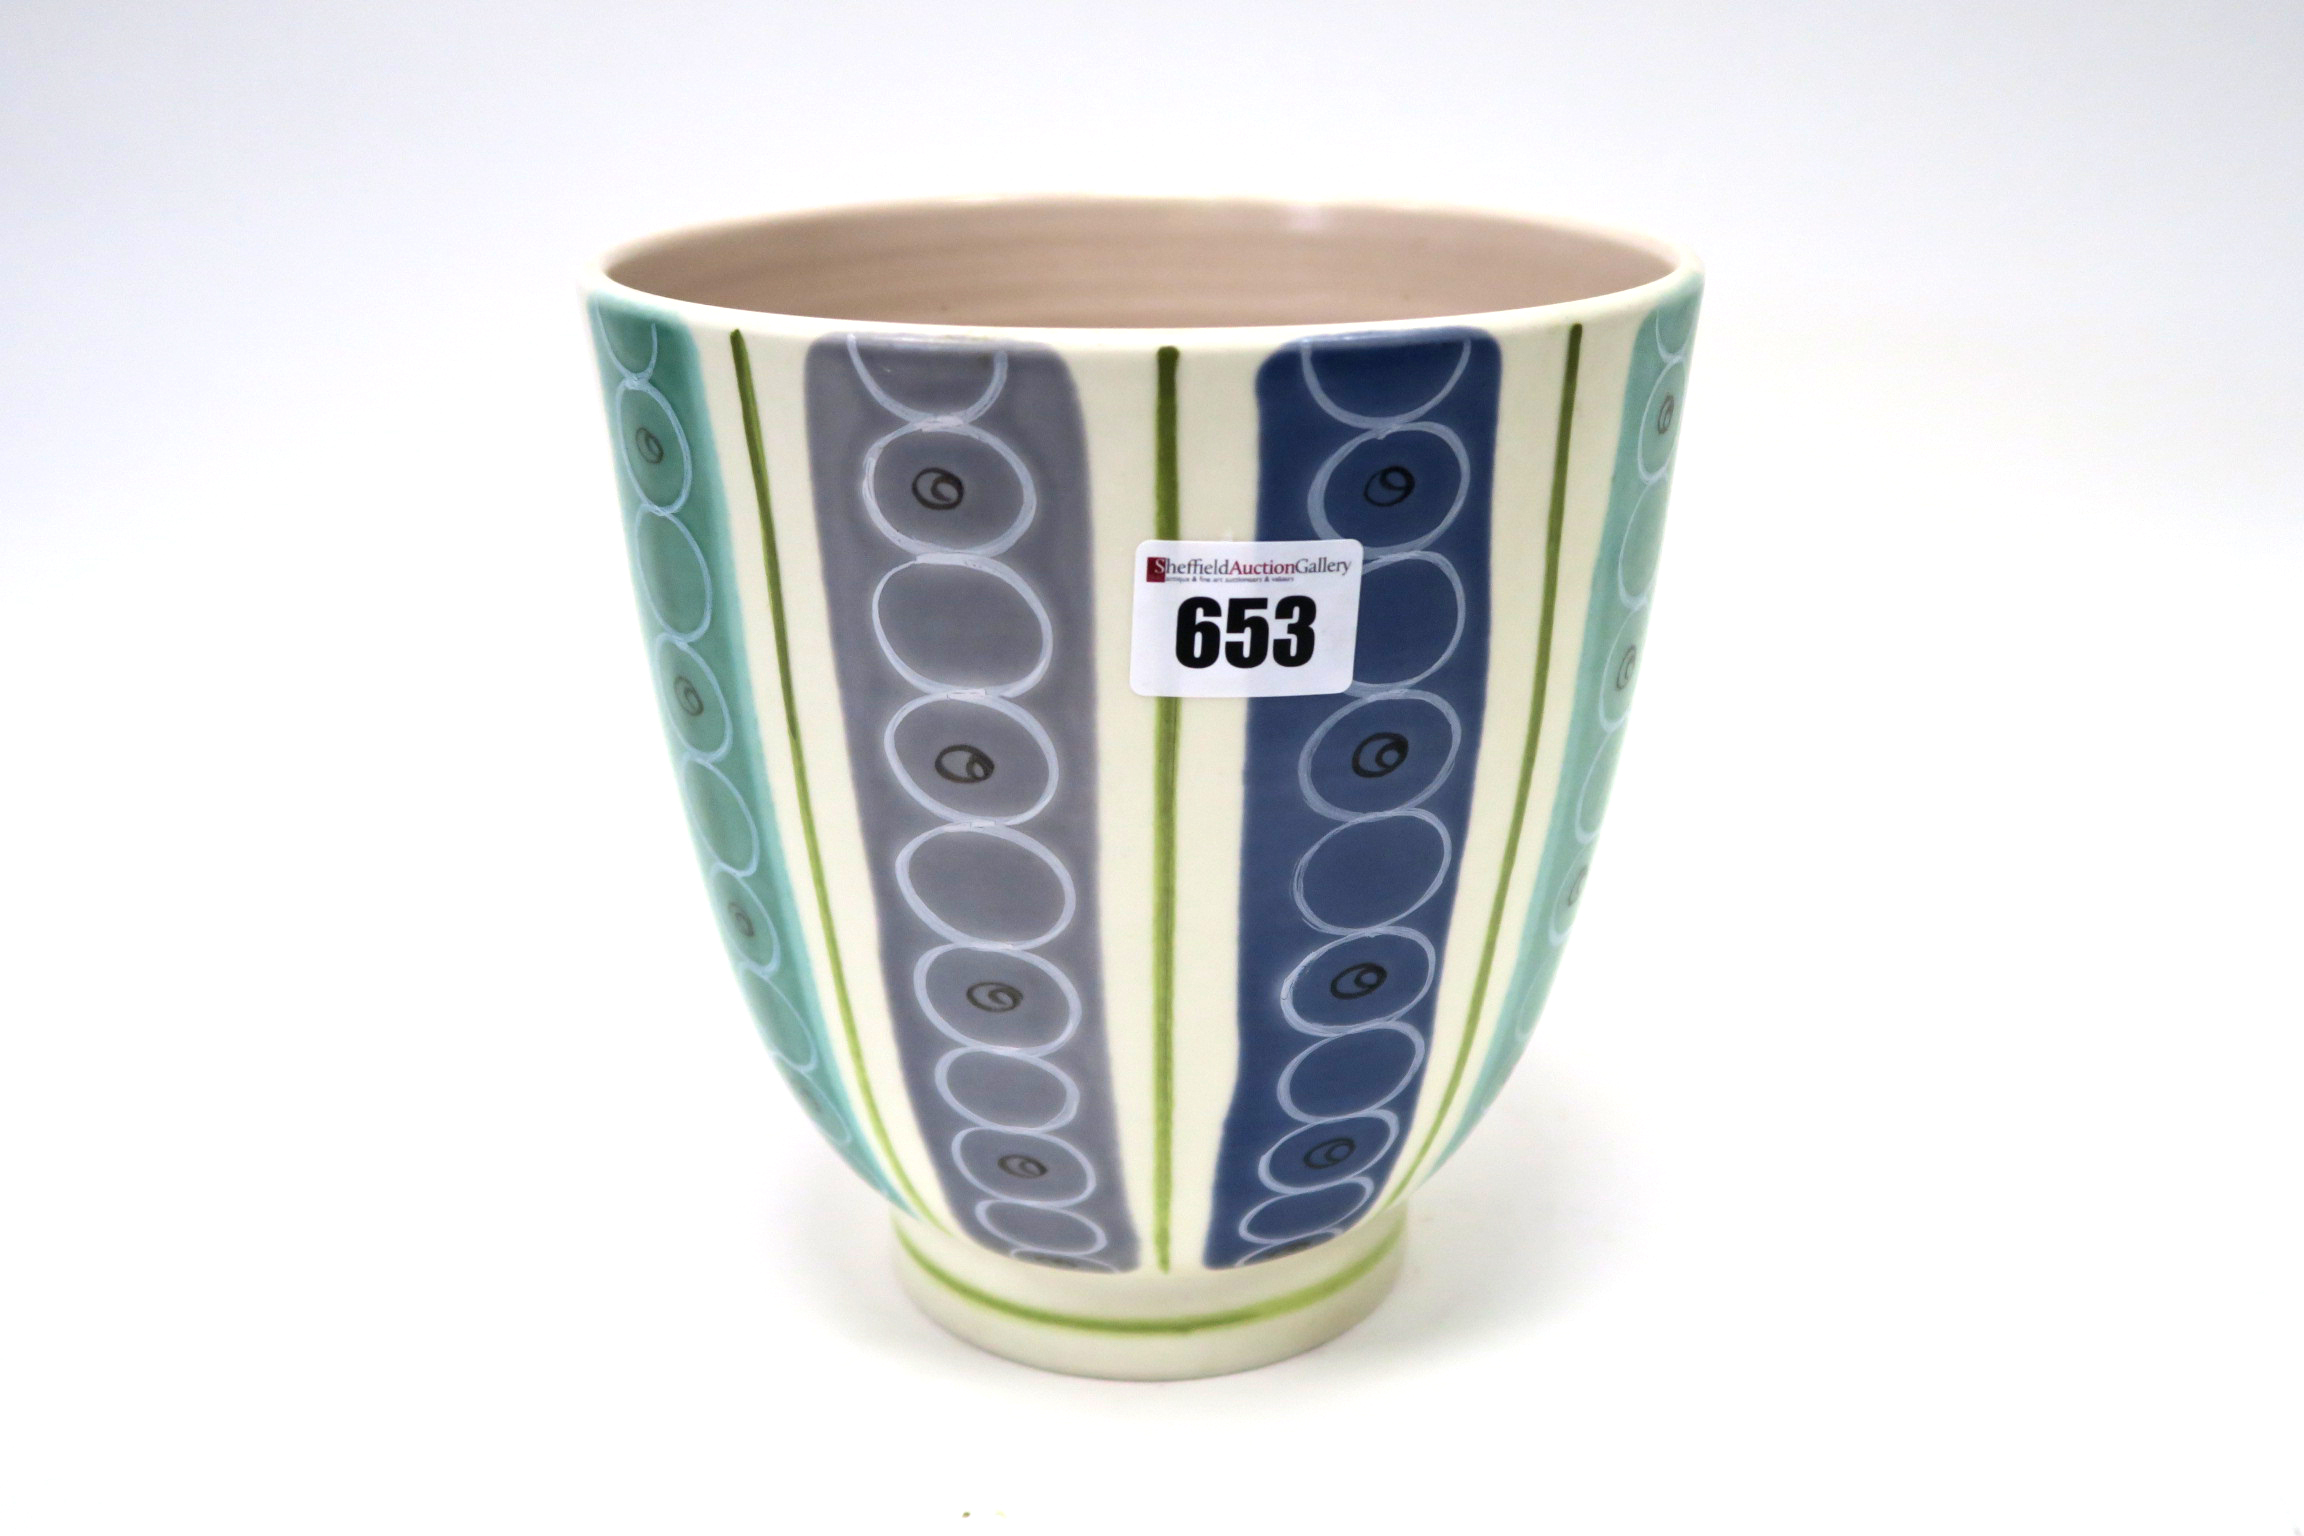 Lot 653 - A Poole White Earthenware Freeform Vase, of 'U' shape, painted with vertical bands of circles in